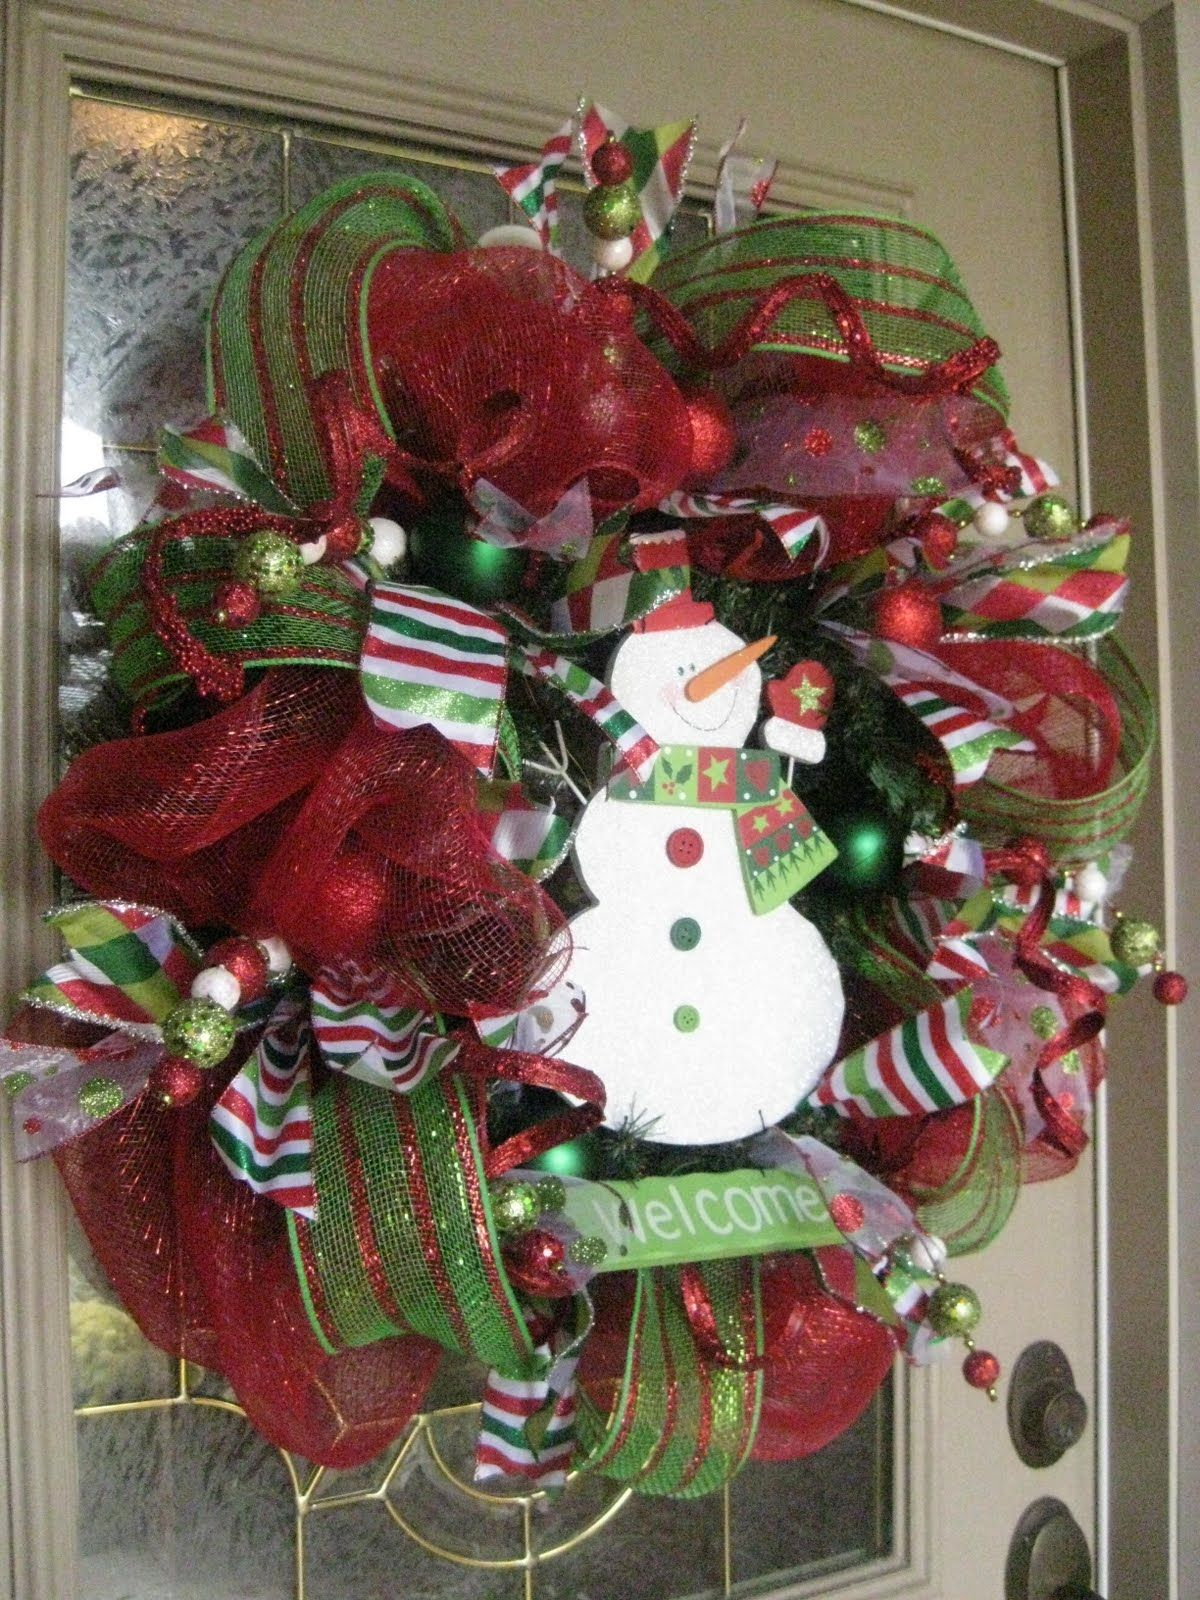 I'm sooo making this Kristen's Creations: Christmas Mesh Wreath Tutorial!